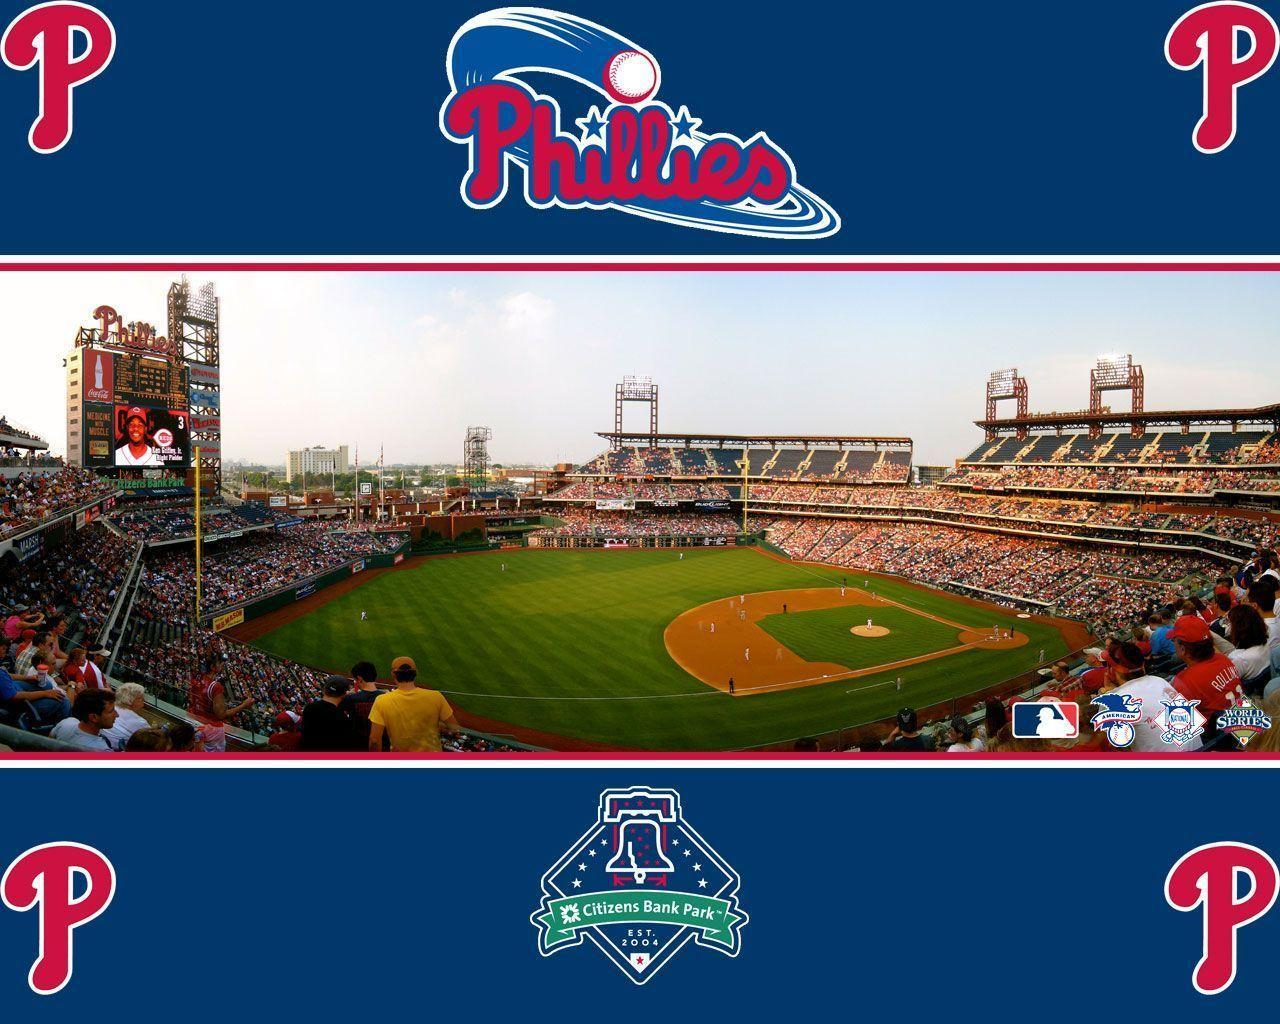 Philadelphia Phillies Desktop Wallpaper Free 26133 Images | wallgraf.